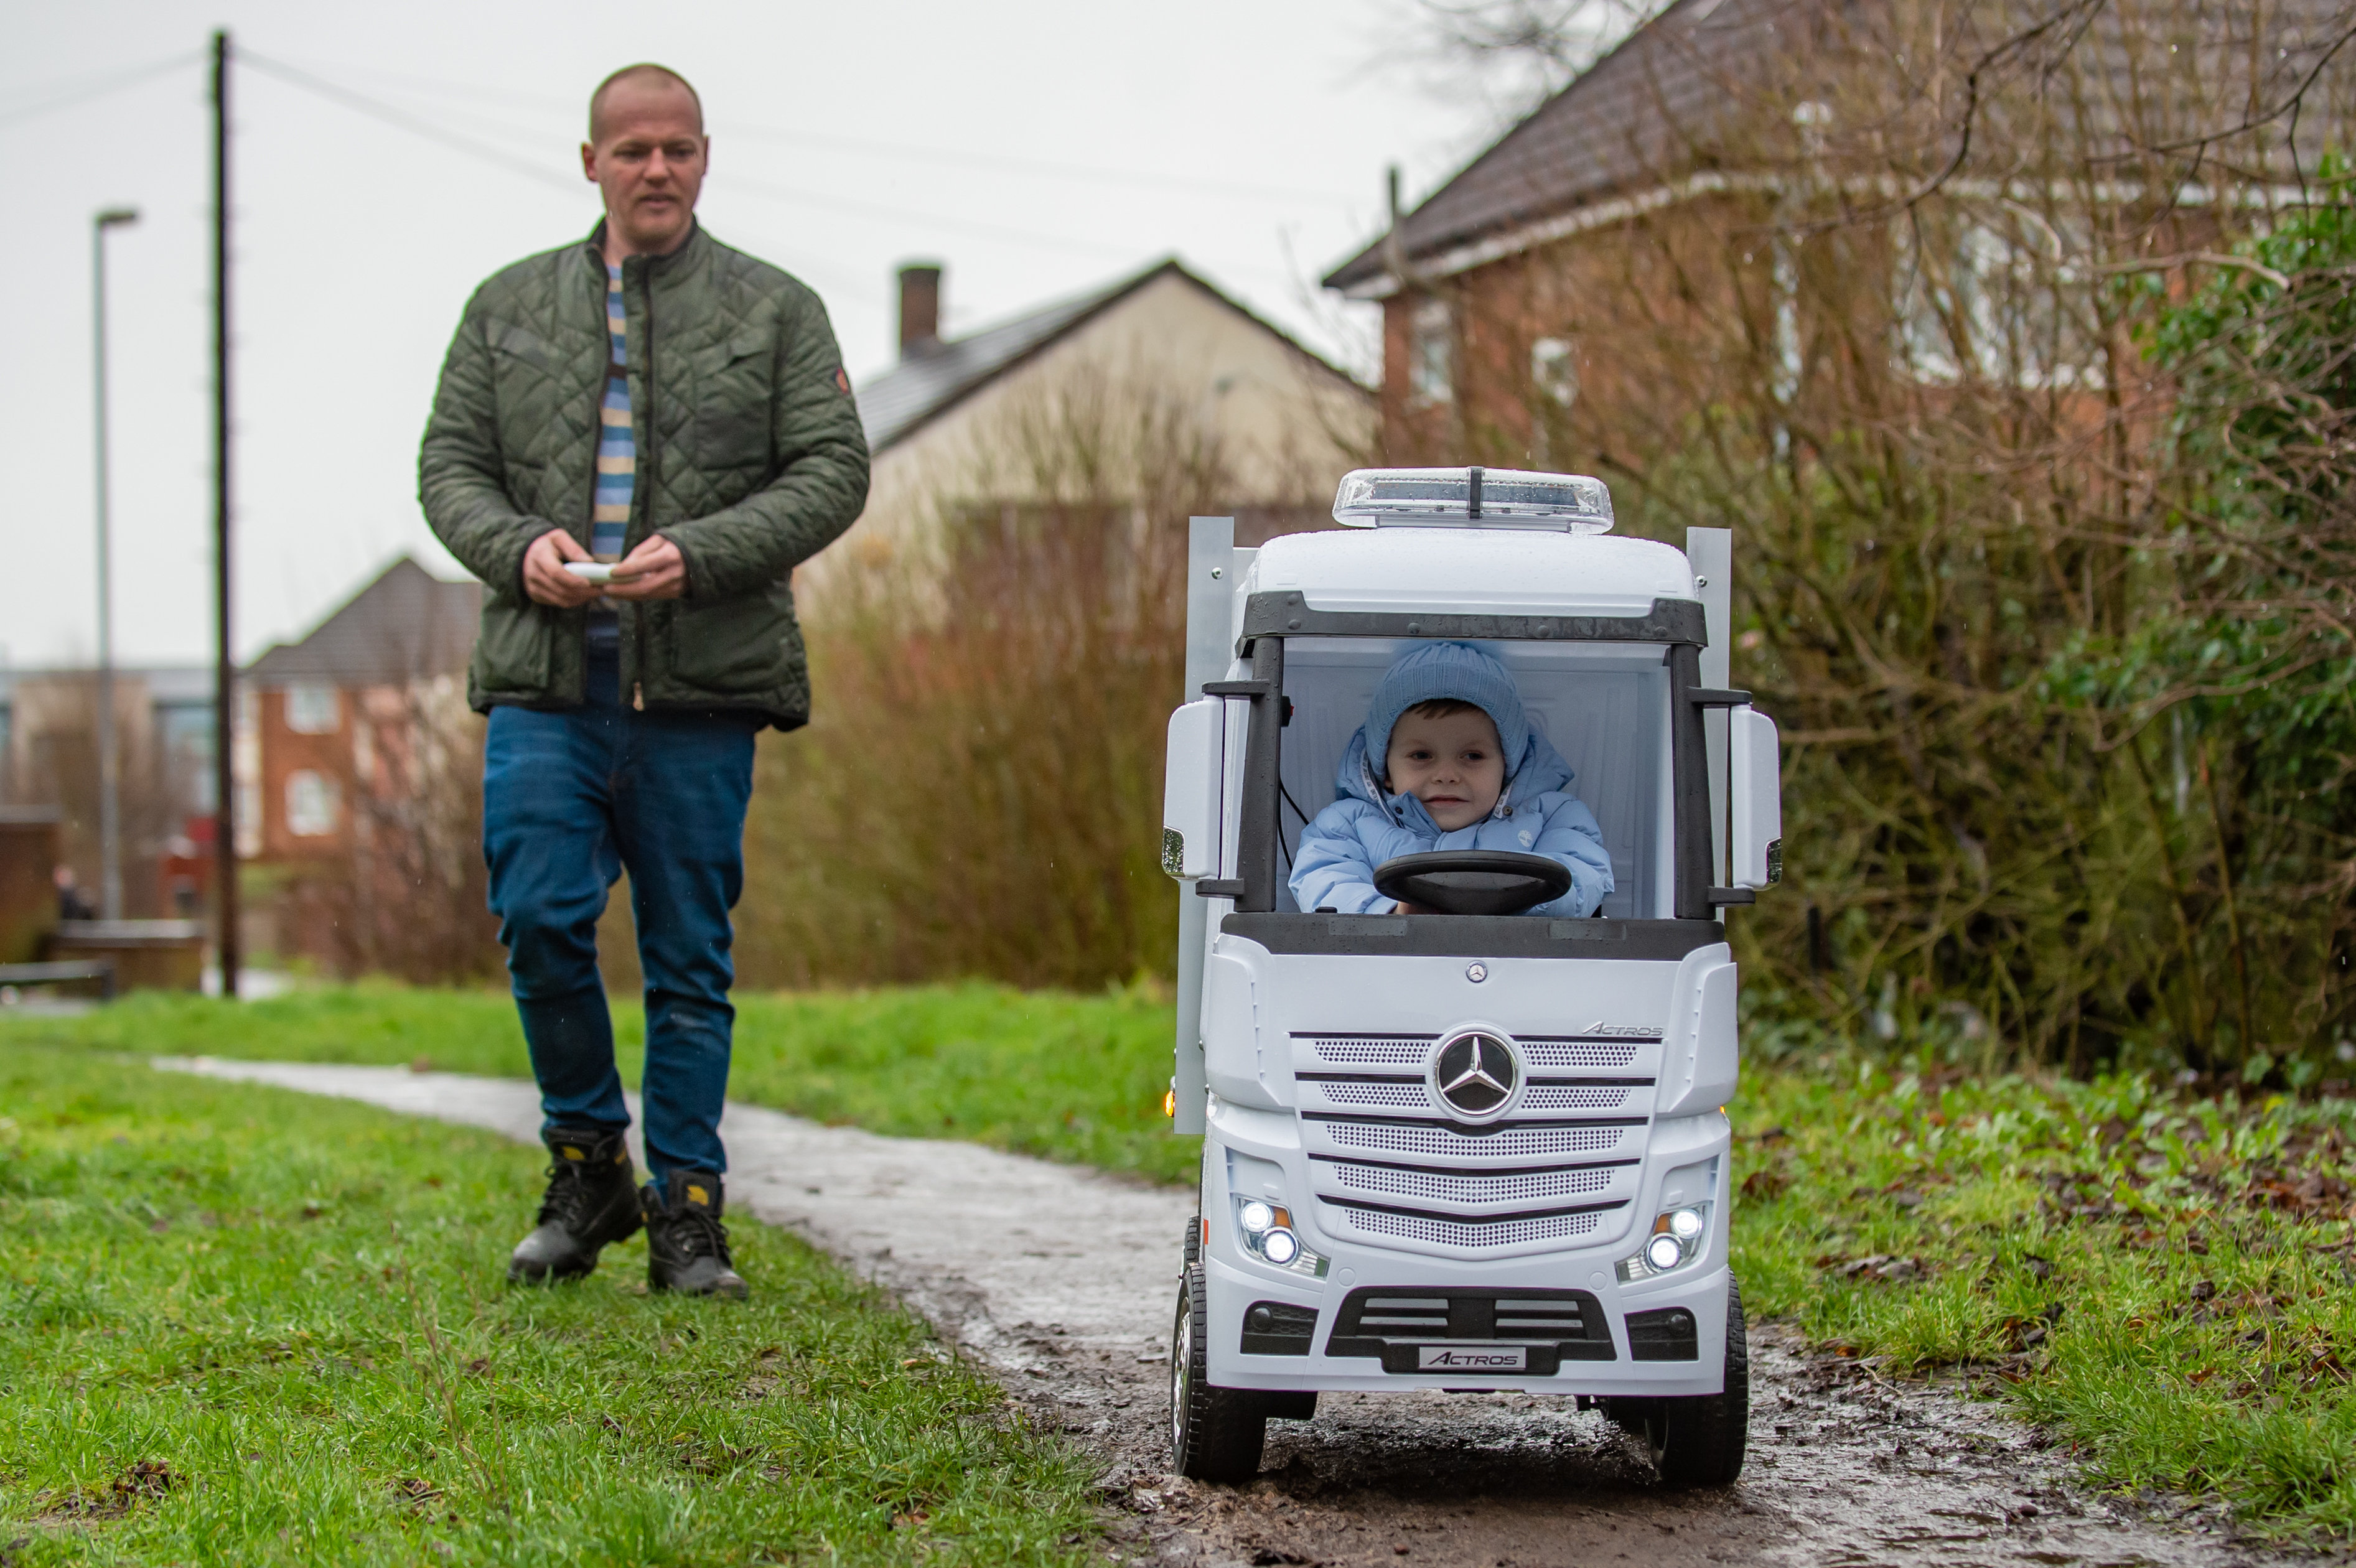 Darren Buckler with his nephew, Hugene Wilkes, 4, and the battery powered lorry he built for him. (SWNS)